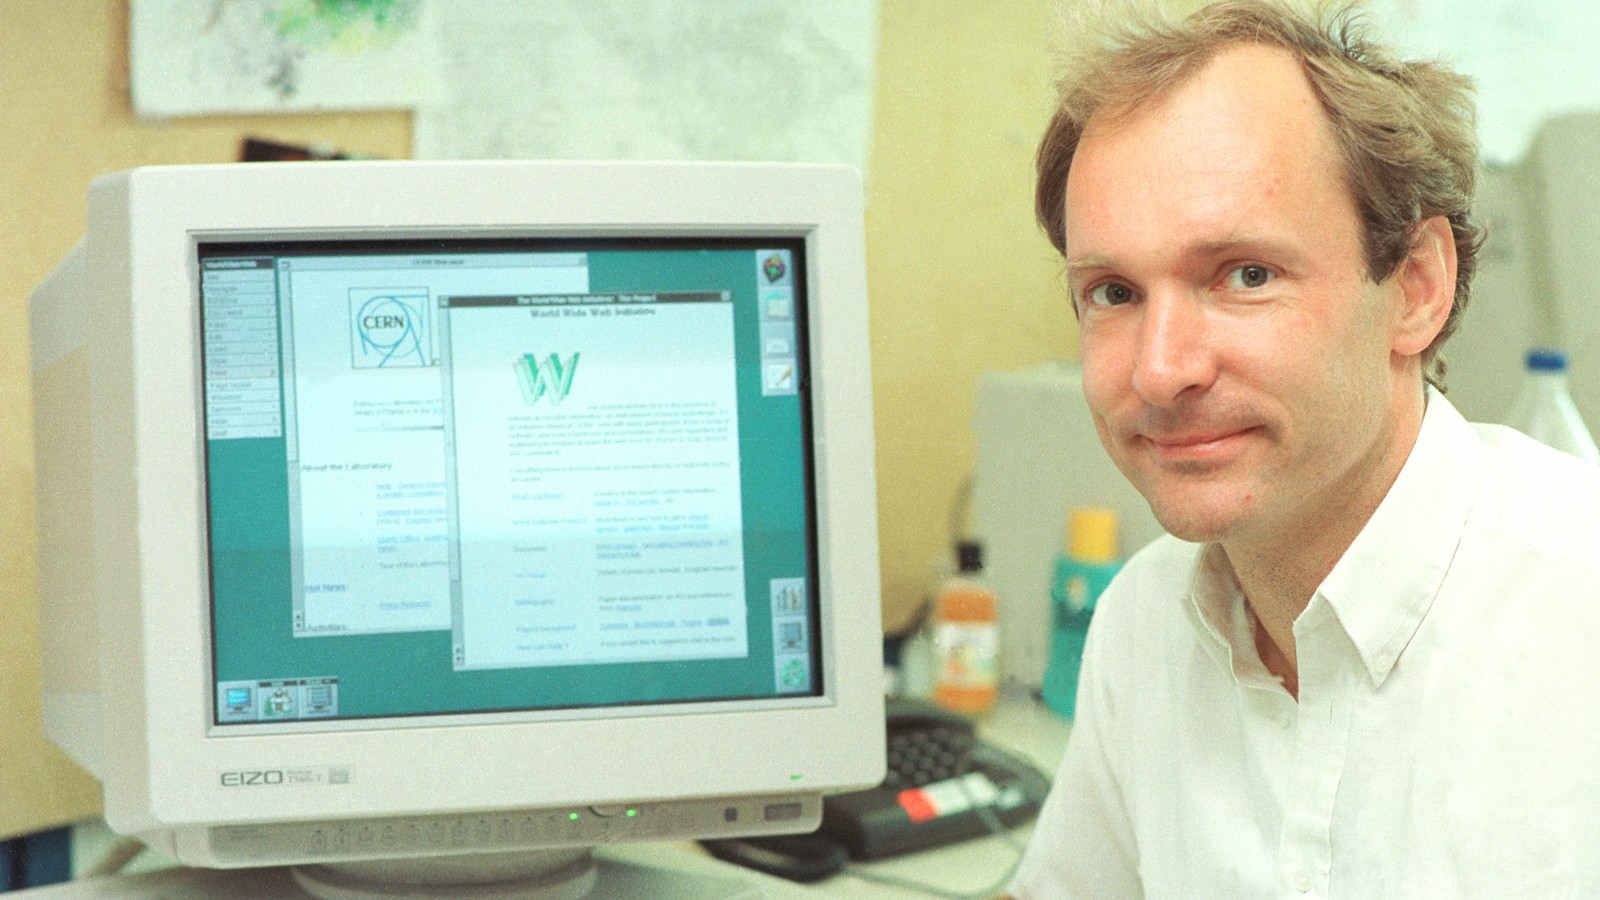 Former physicist, Tim Berners-Lee invented the World Wide Web for high energy physics at CERN from 1989 to 1994. copyright 1994-2020 CERN